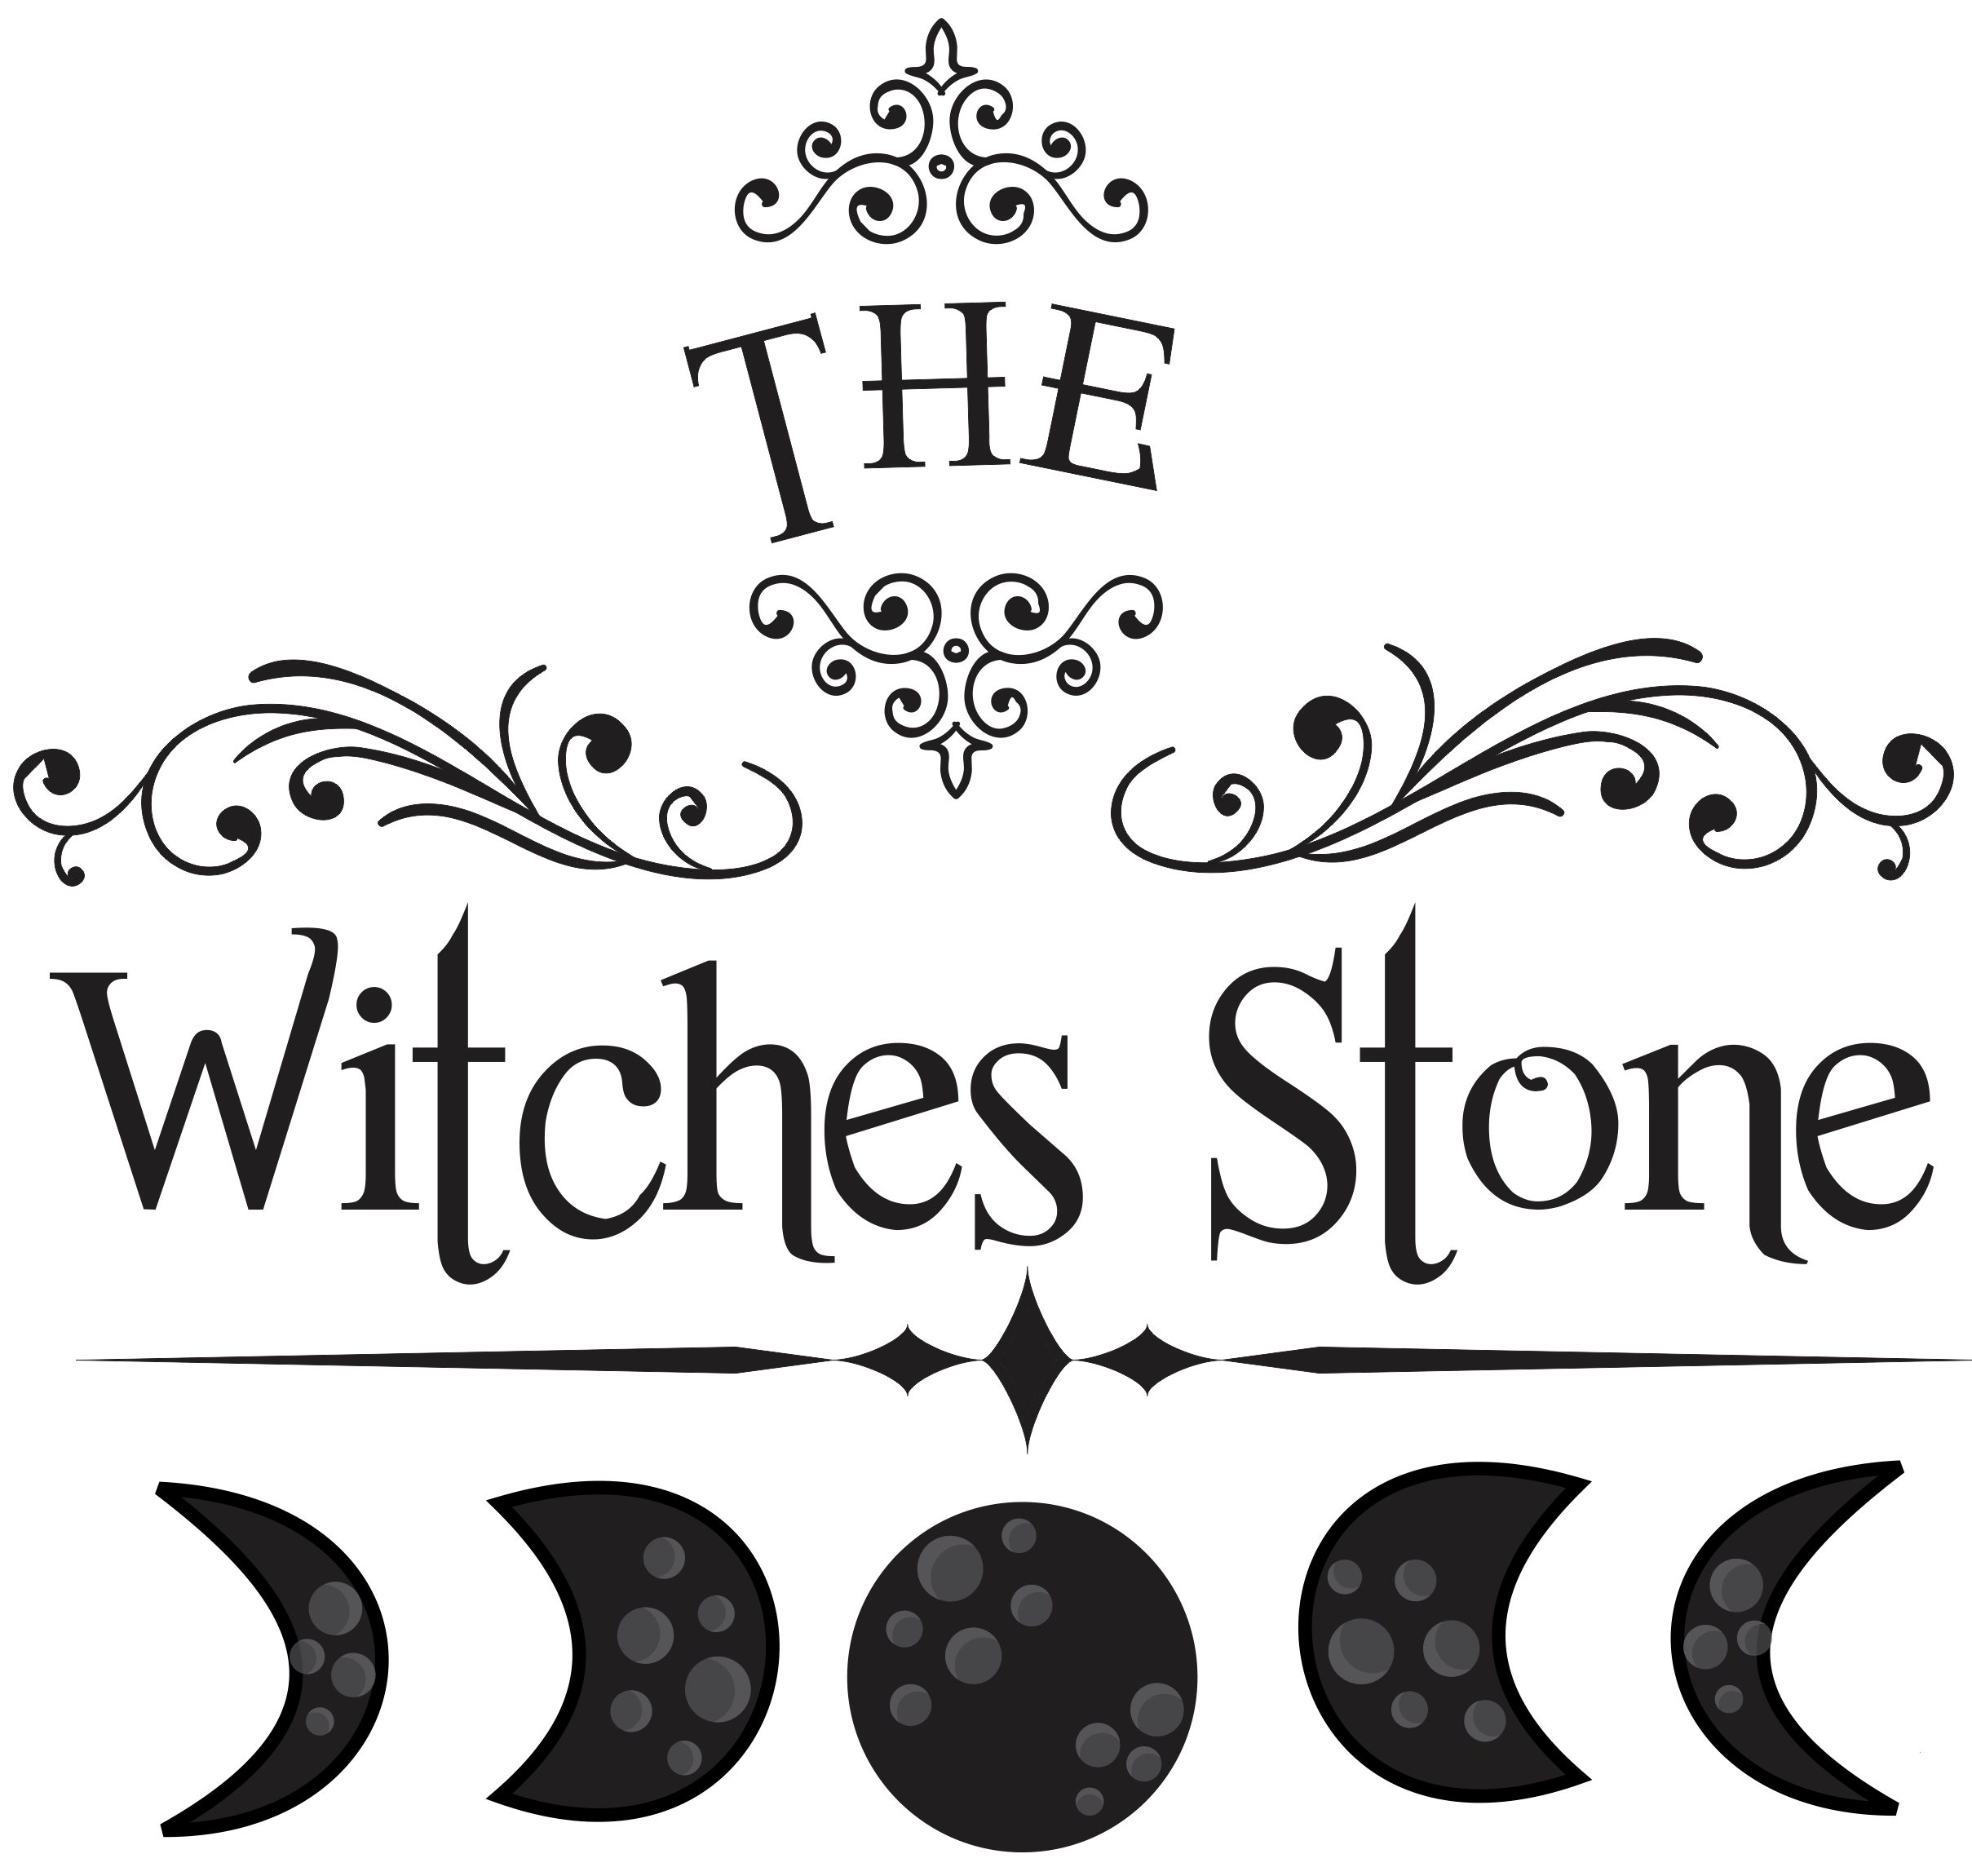 The Witches Stone